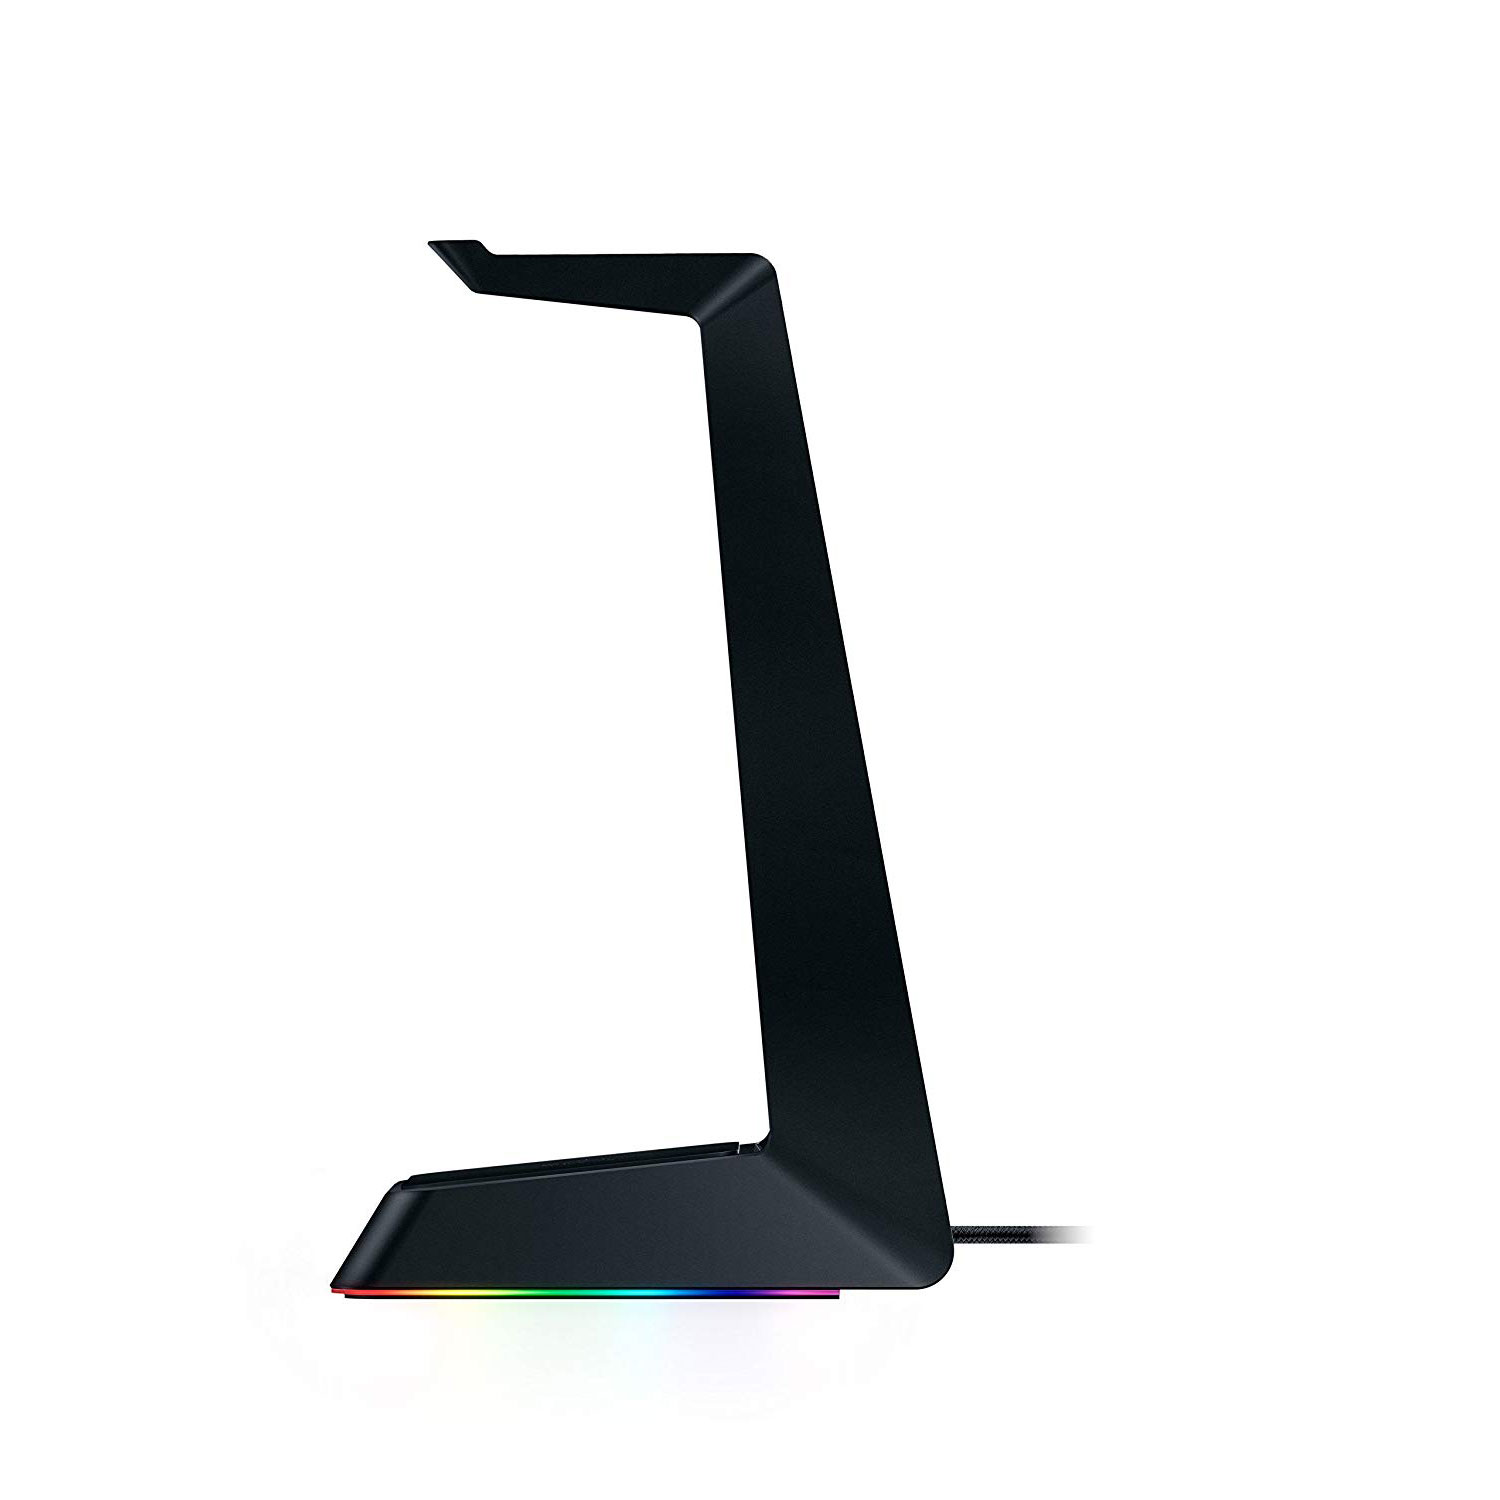 Razer Basestation Chrome Rgb Enabled Headset Stand With